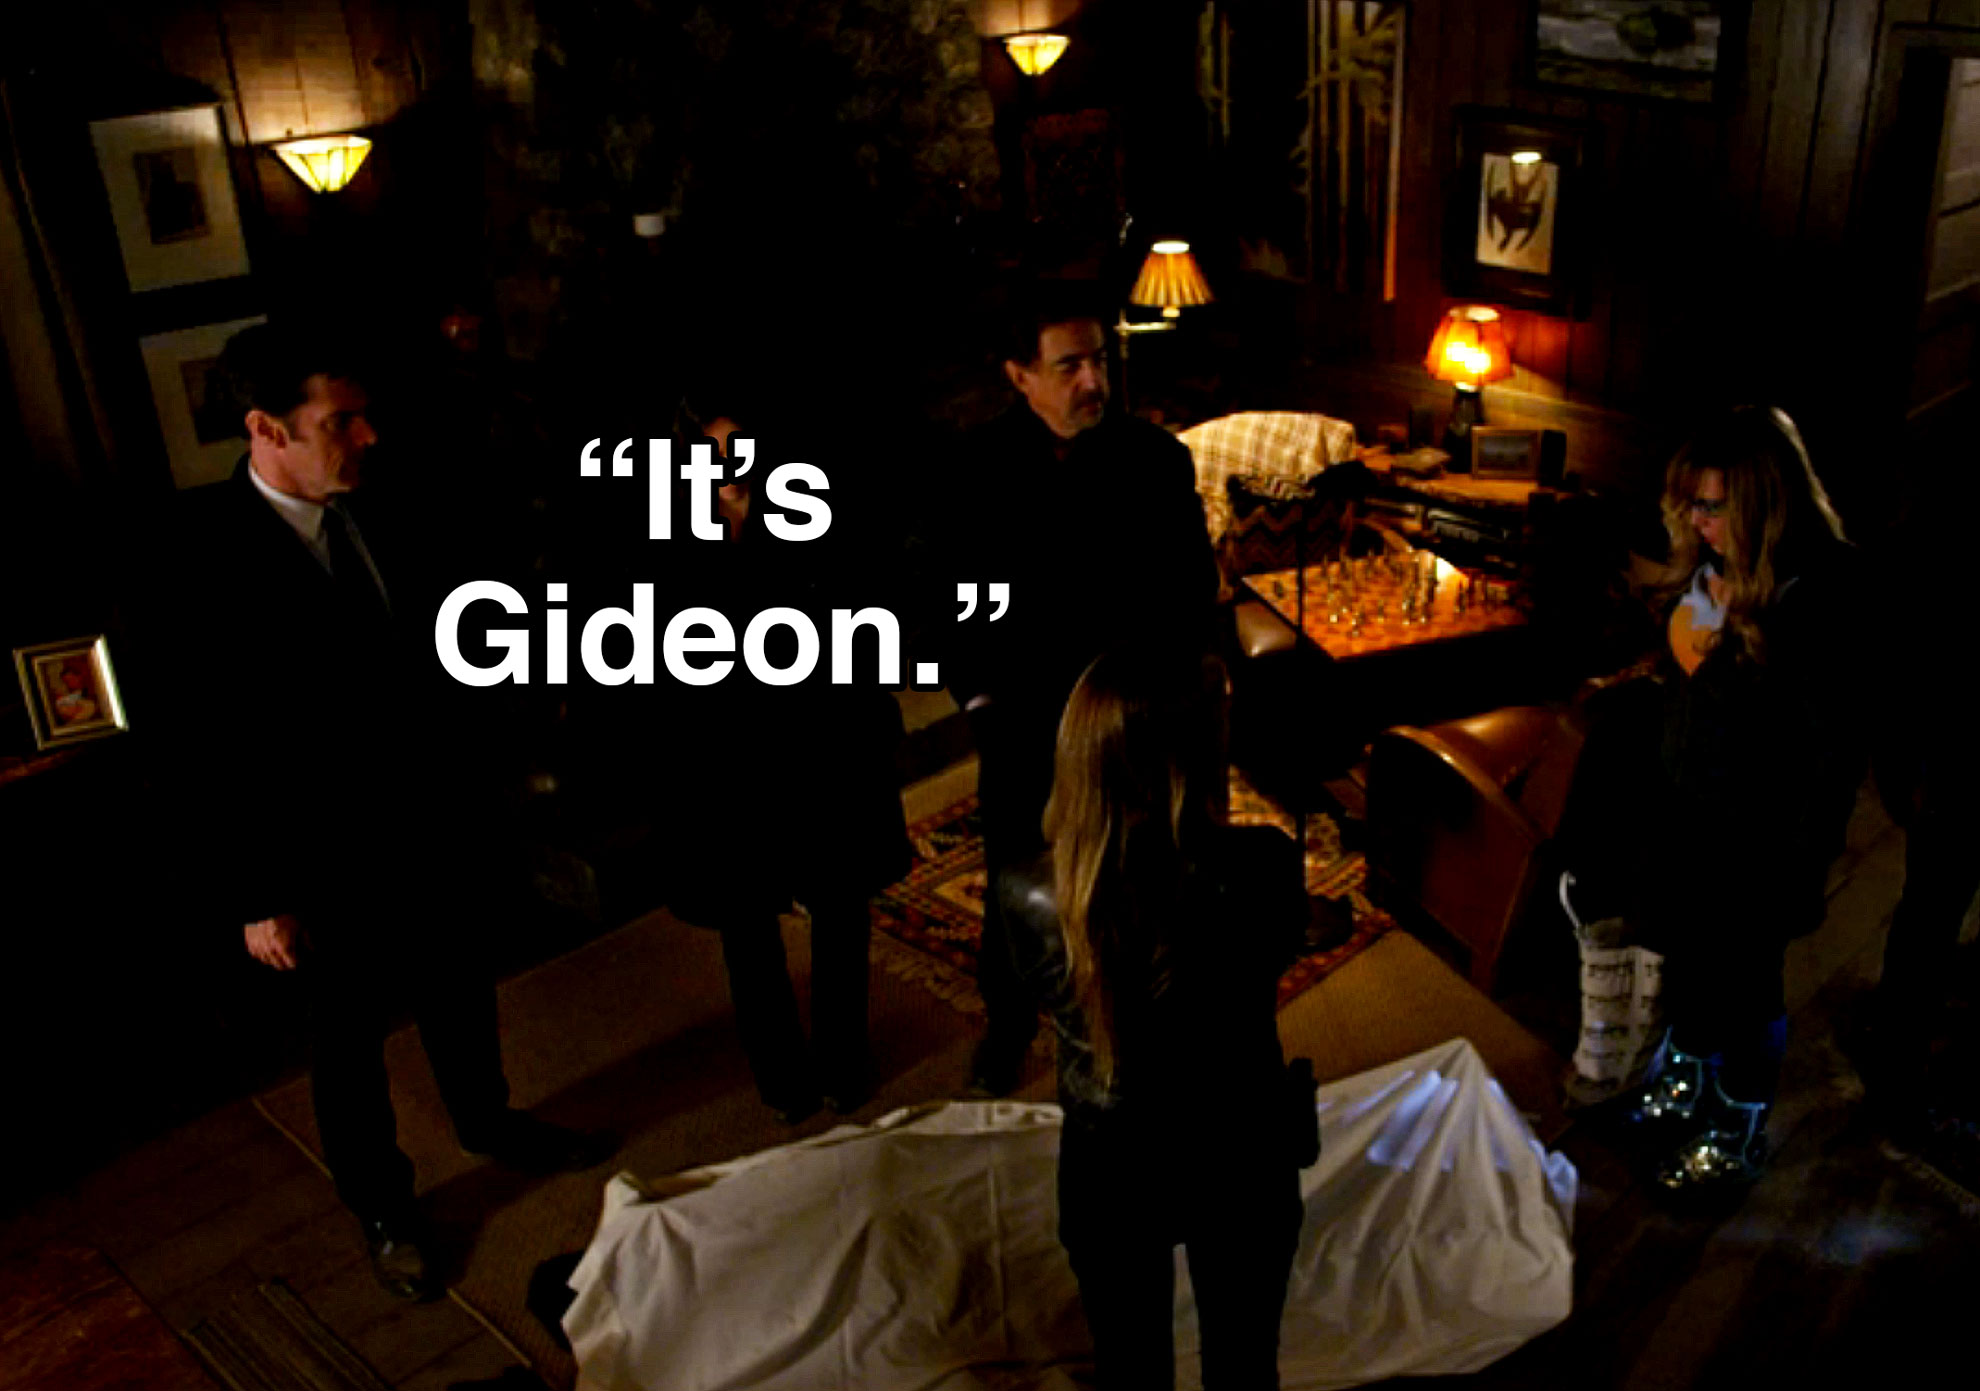 SSA Jason Gideon was murdered.